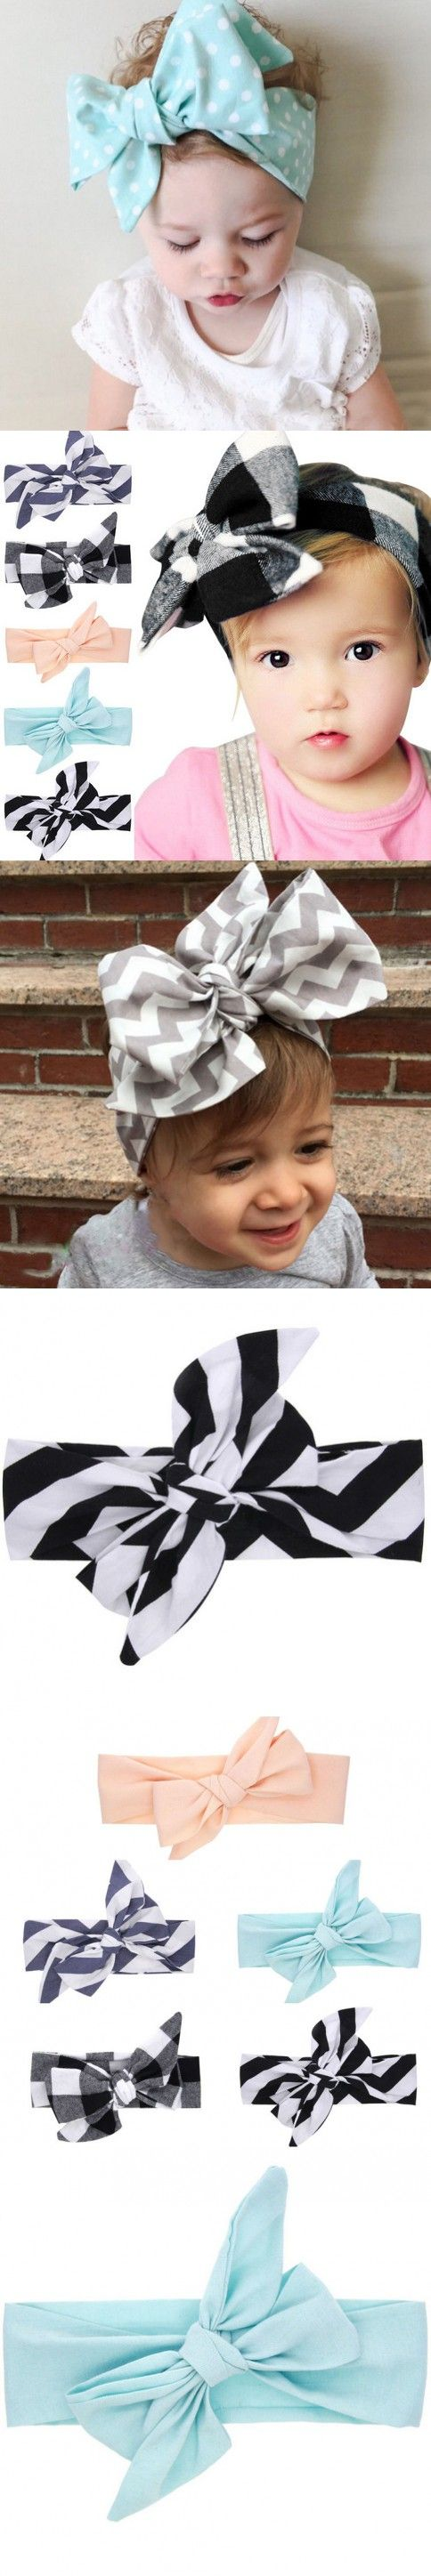 2016 Summer style big bowknot baby girl hair accessories Infant baby headband Children elastic hair bands Ribbons and bows 1PC